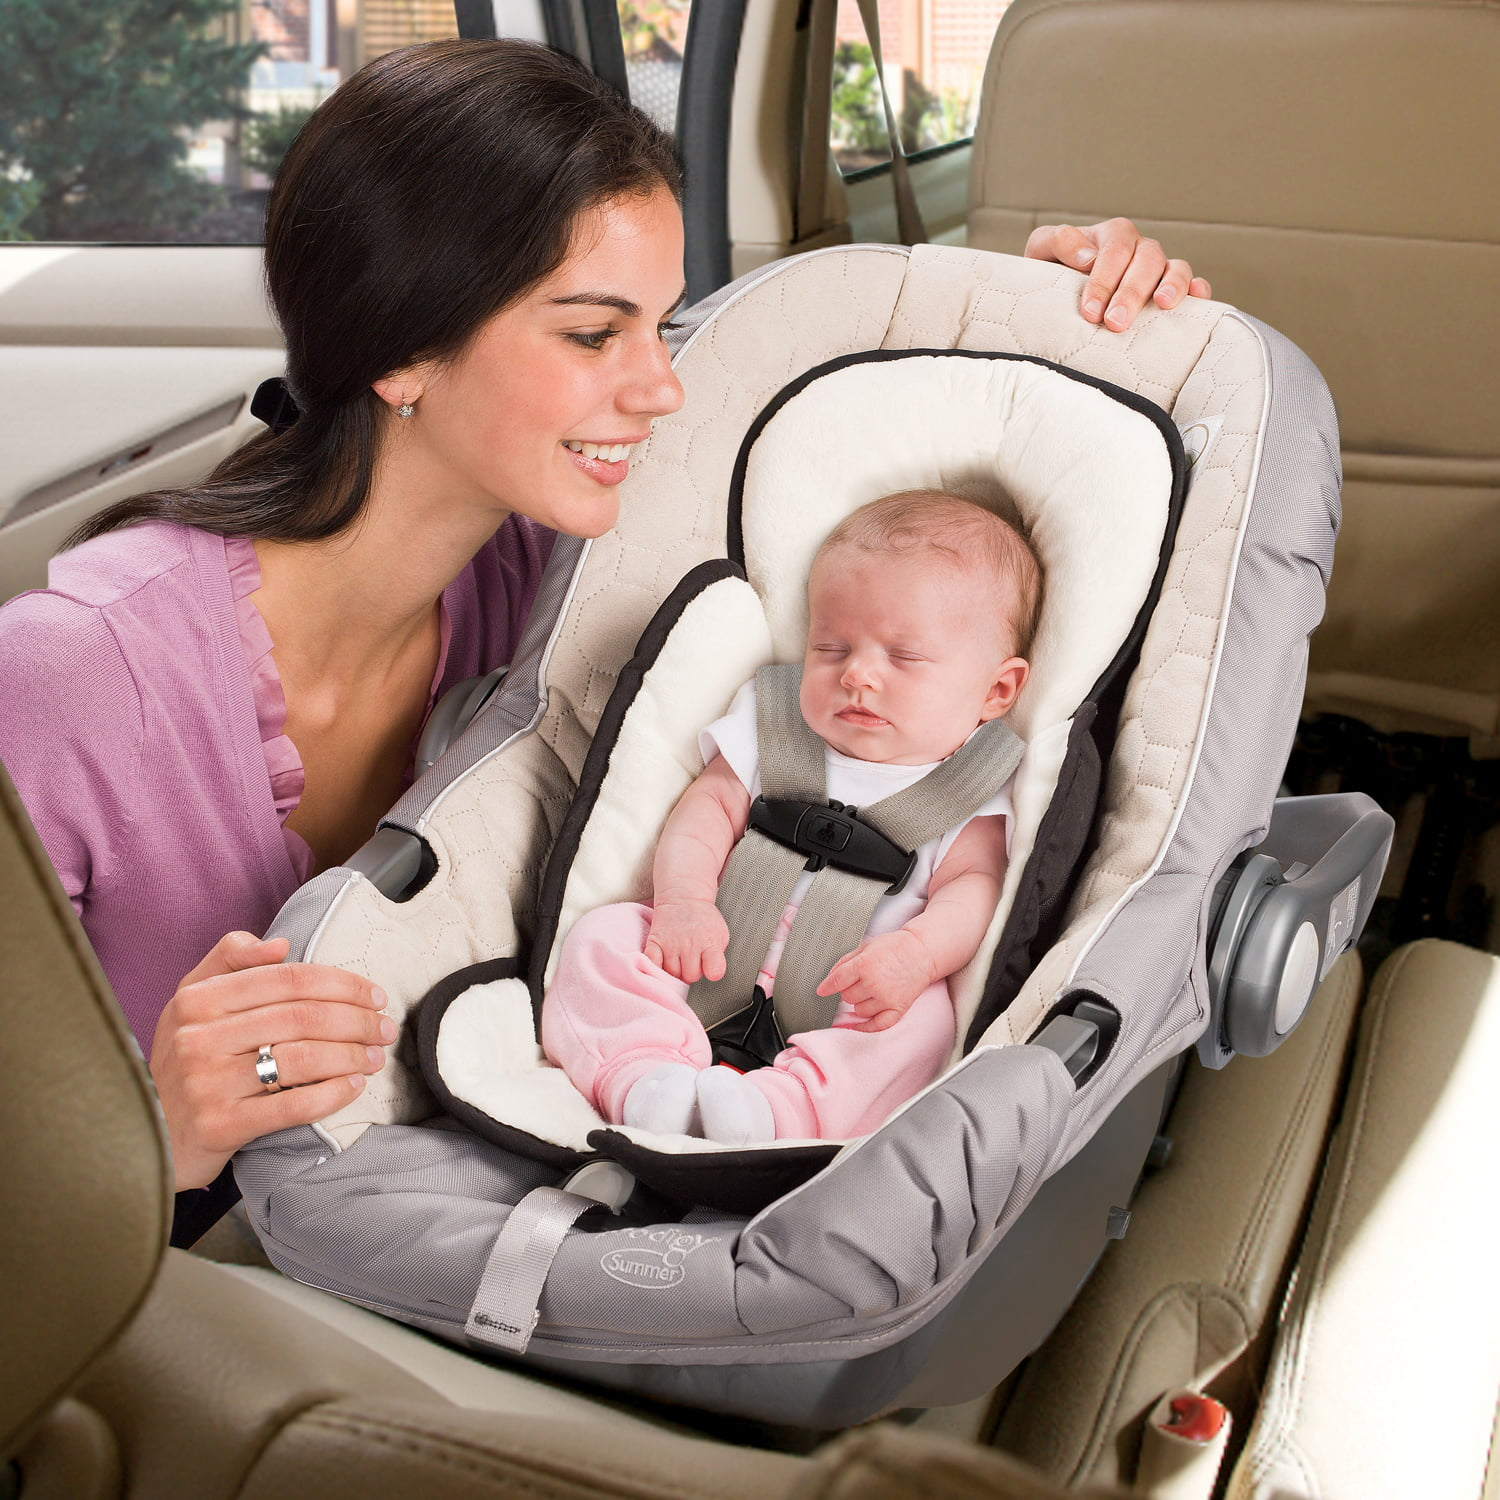 Summer Infant Snuzzler, Velboa Insert For Car Seat, Infant